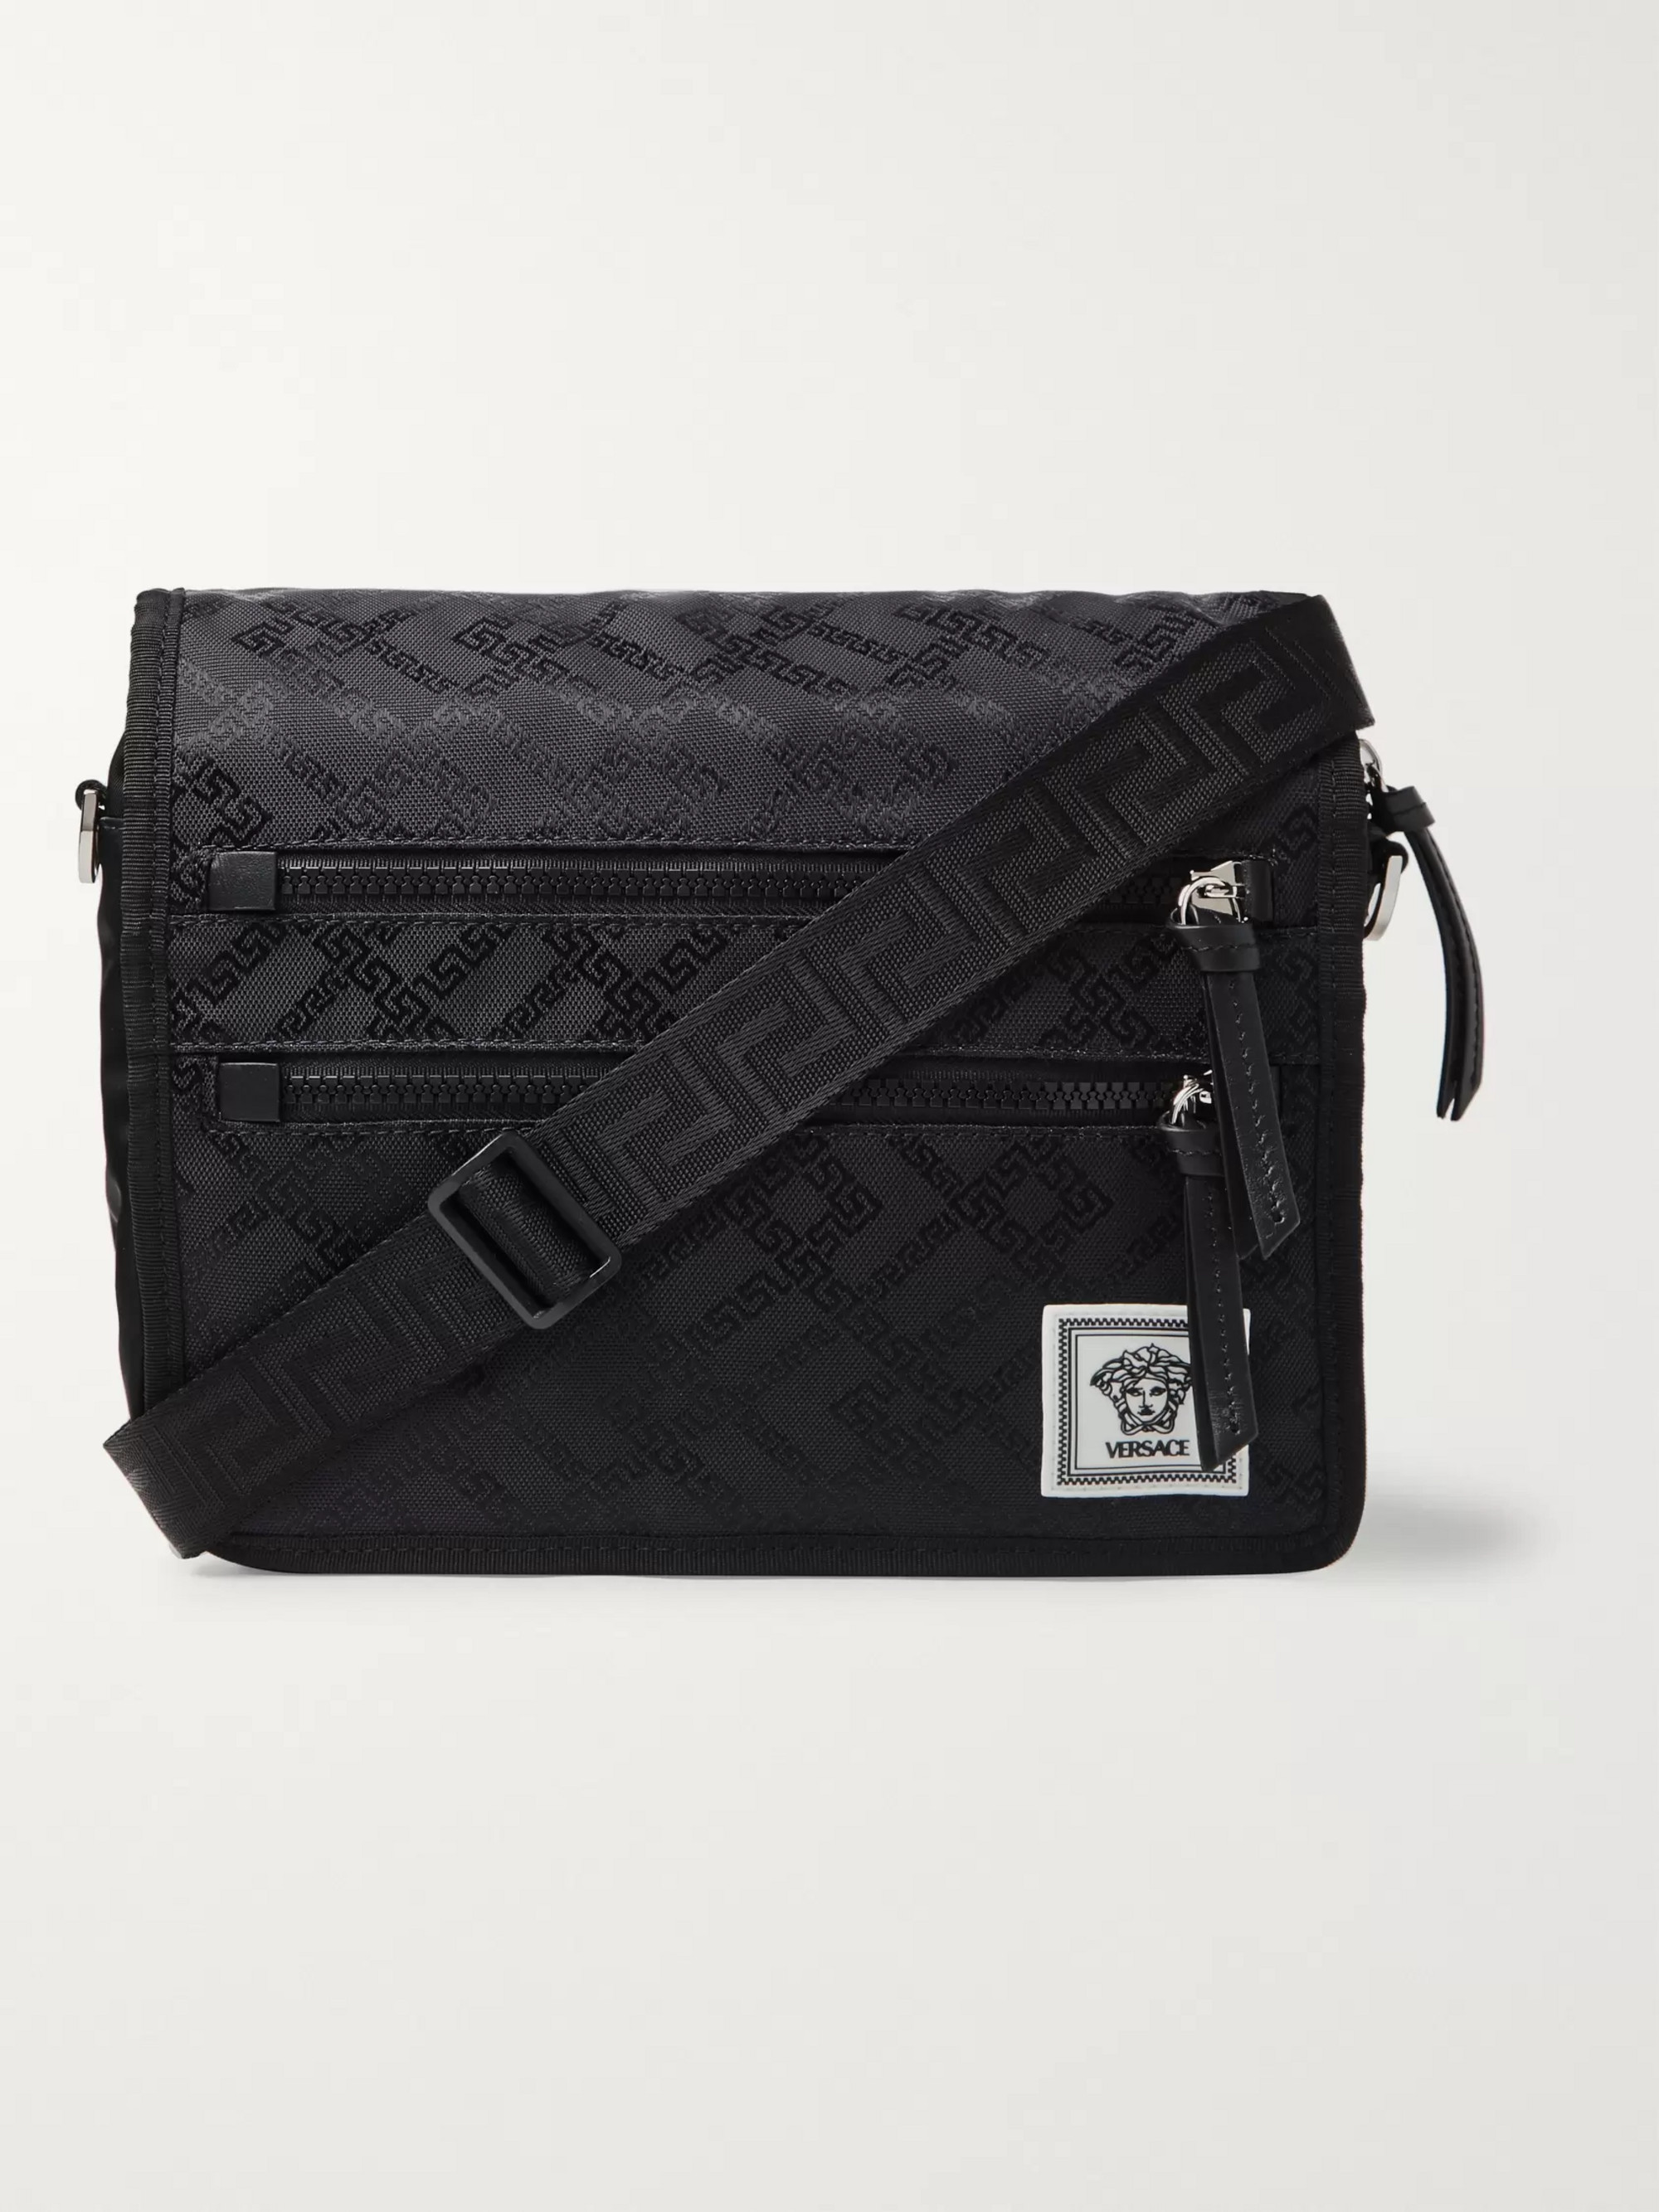 Versace Leather-Trimmed Printed Nylon Messenger Bag